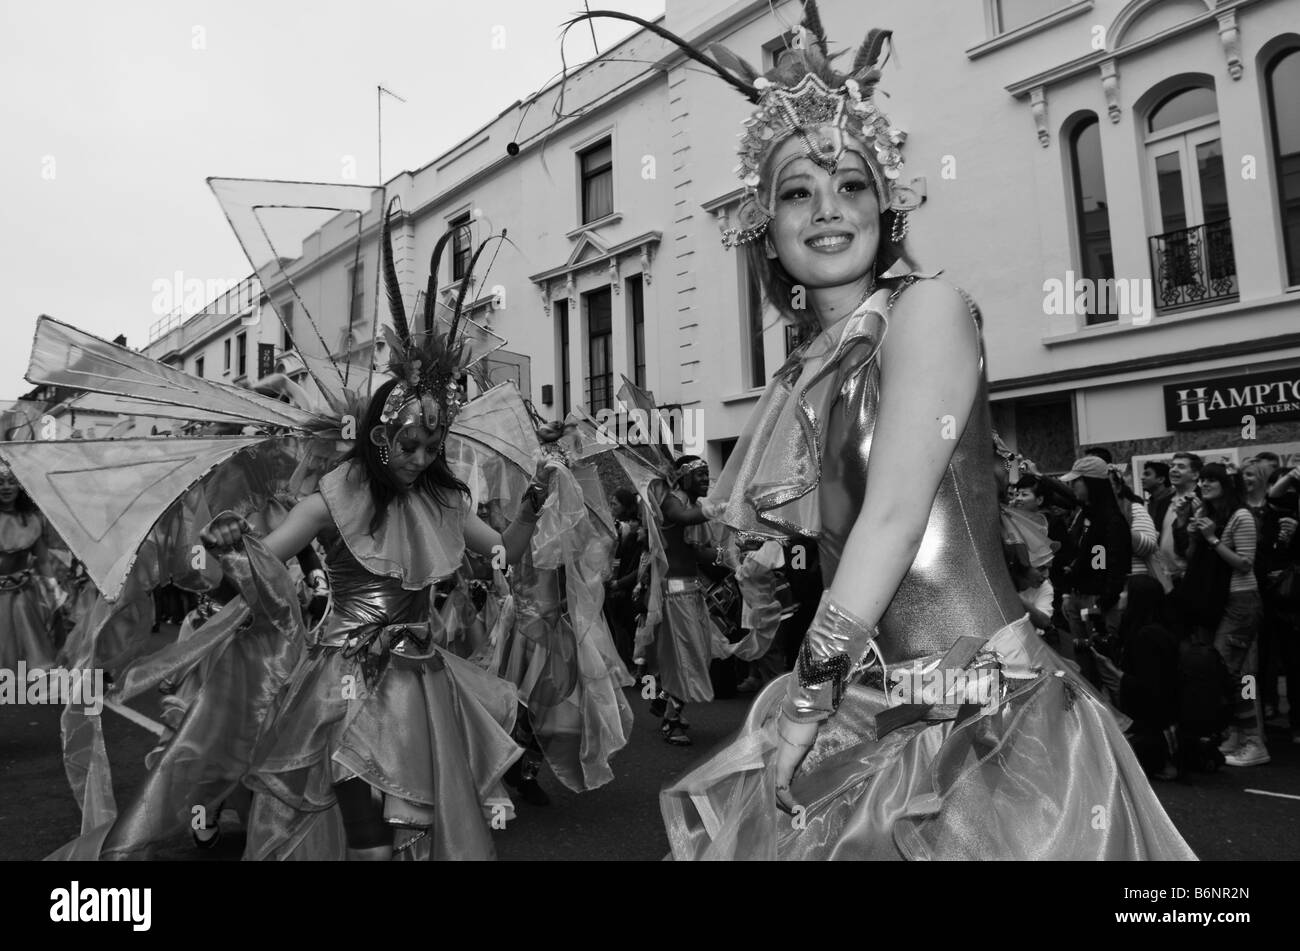 UNITED KINGDOM, ENGLAND, 25th August 2008. The parade on the final day of the Notting Hill Carnival. - Stock Image